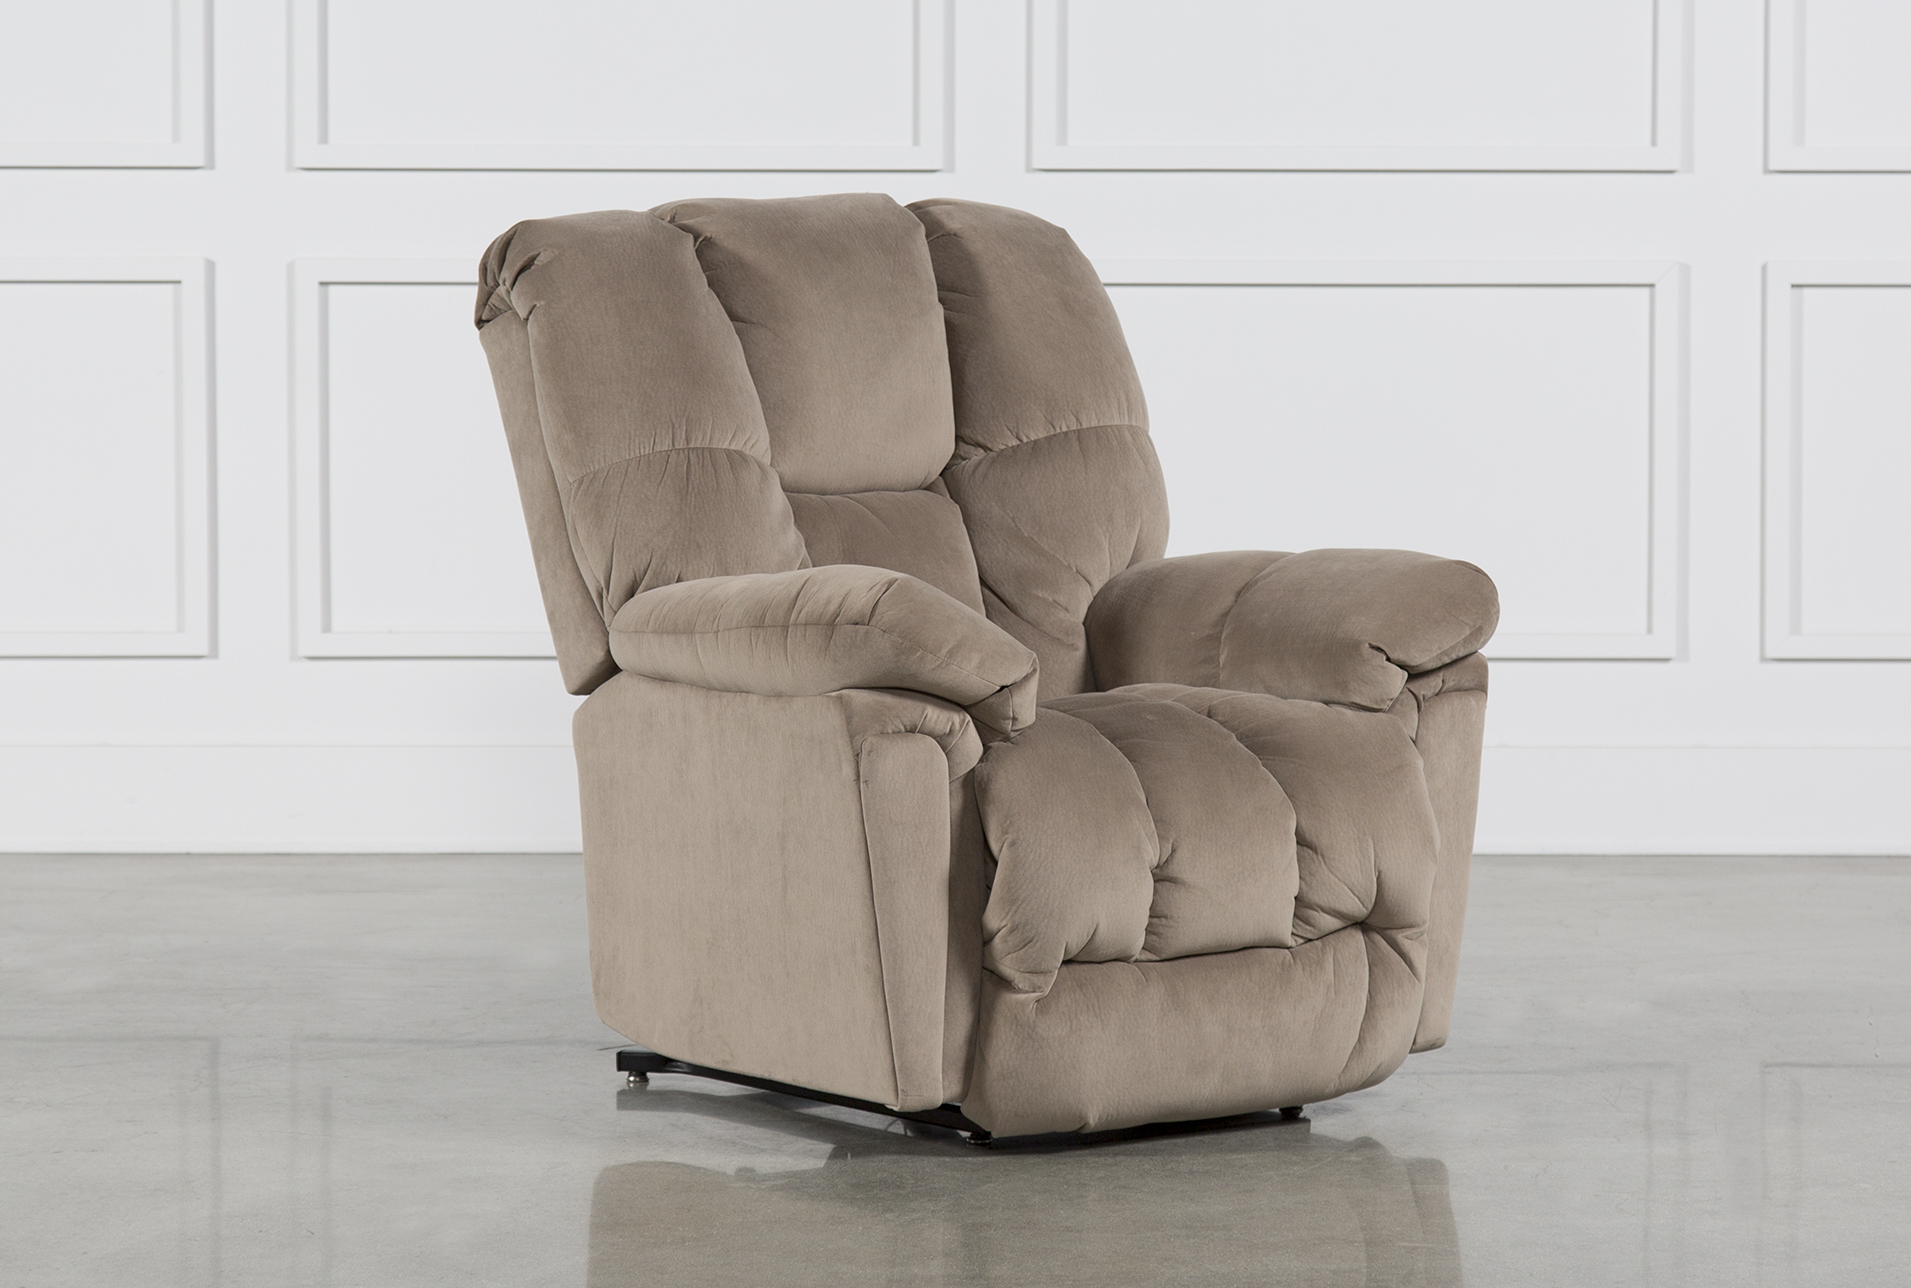 Etonnant Maurer Power Lift Recliner (Qty: 1) Has Been Successfully Added To Your  Cart.